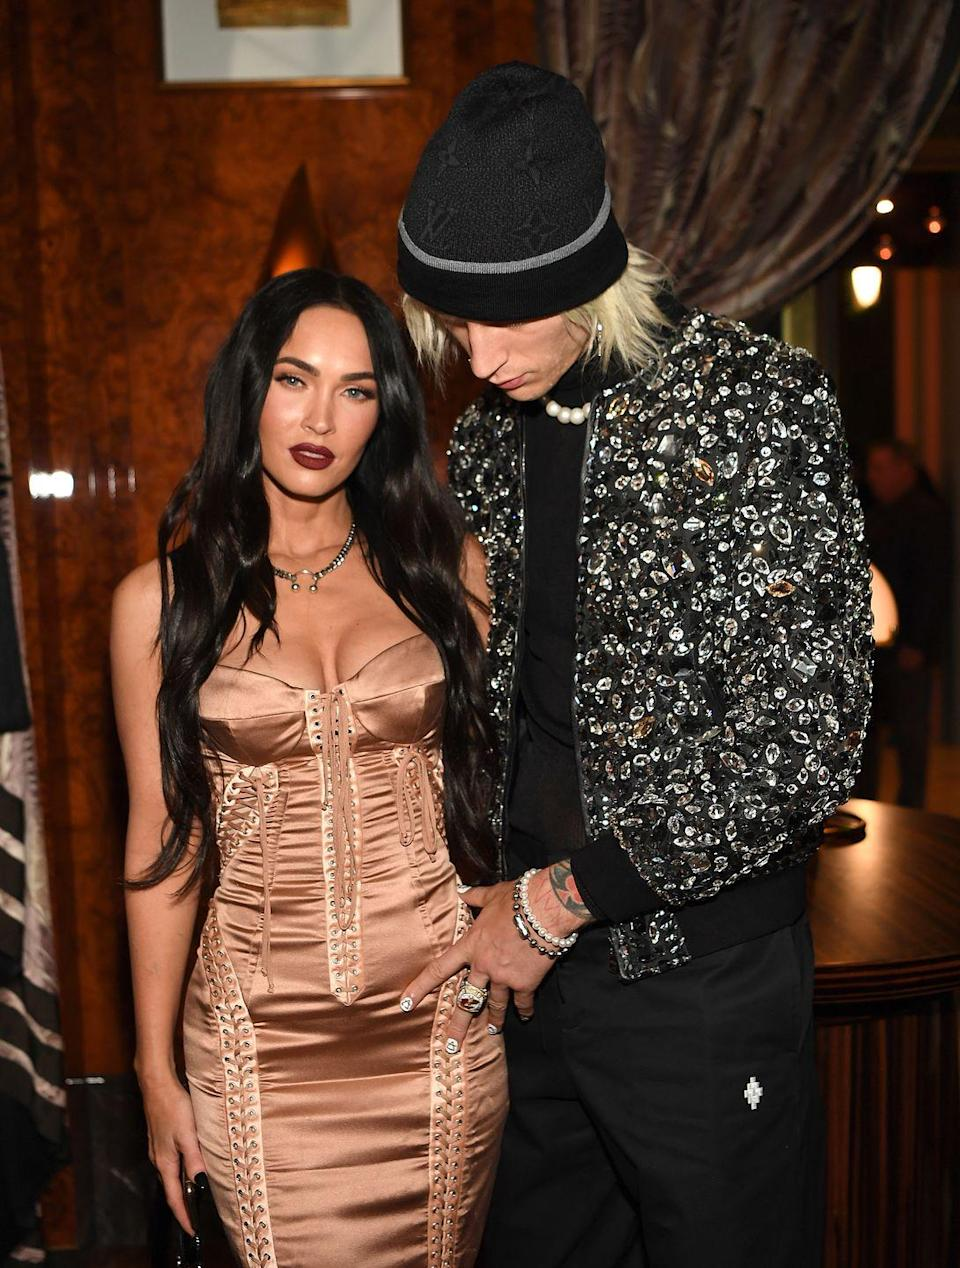 <p>The actor wore a nude-coloured Dolce & Gabbana corset dress with on a date with her boyfriend Machine Gun Kelly (also in Dolce & Gabbana) at the UFC match and grand opening of Delilah at Wynn Las Vegas on July 10, 2021. </p><p>She styled the look with a chunky silver chain and a maroon-coloured lipstick. </p>